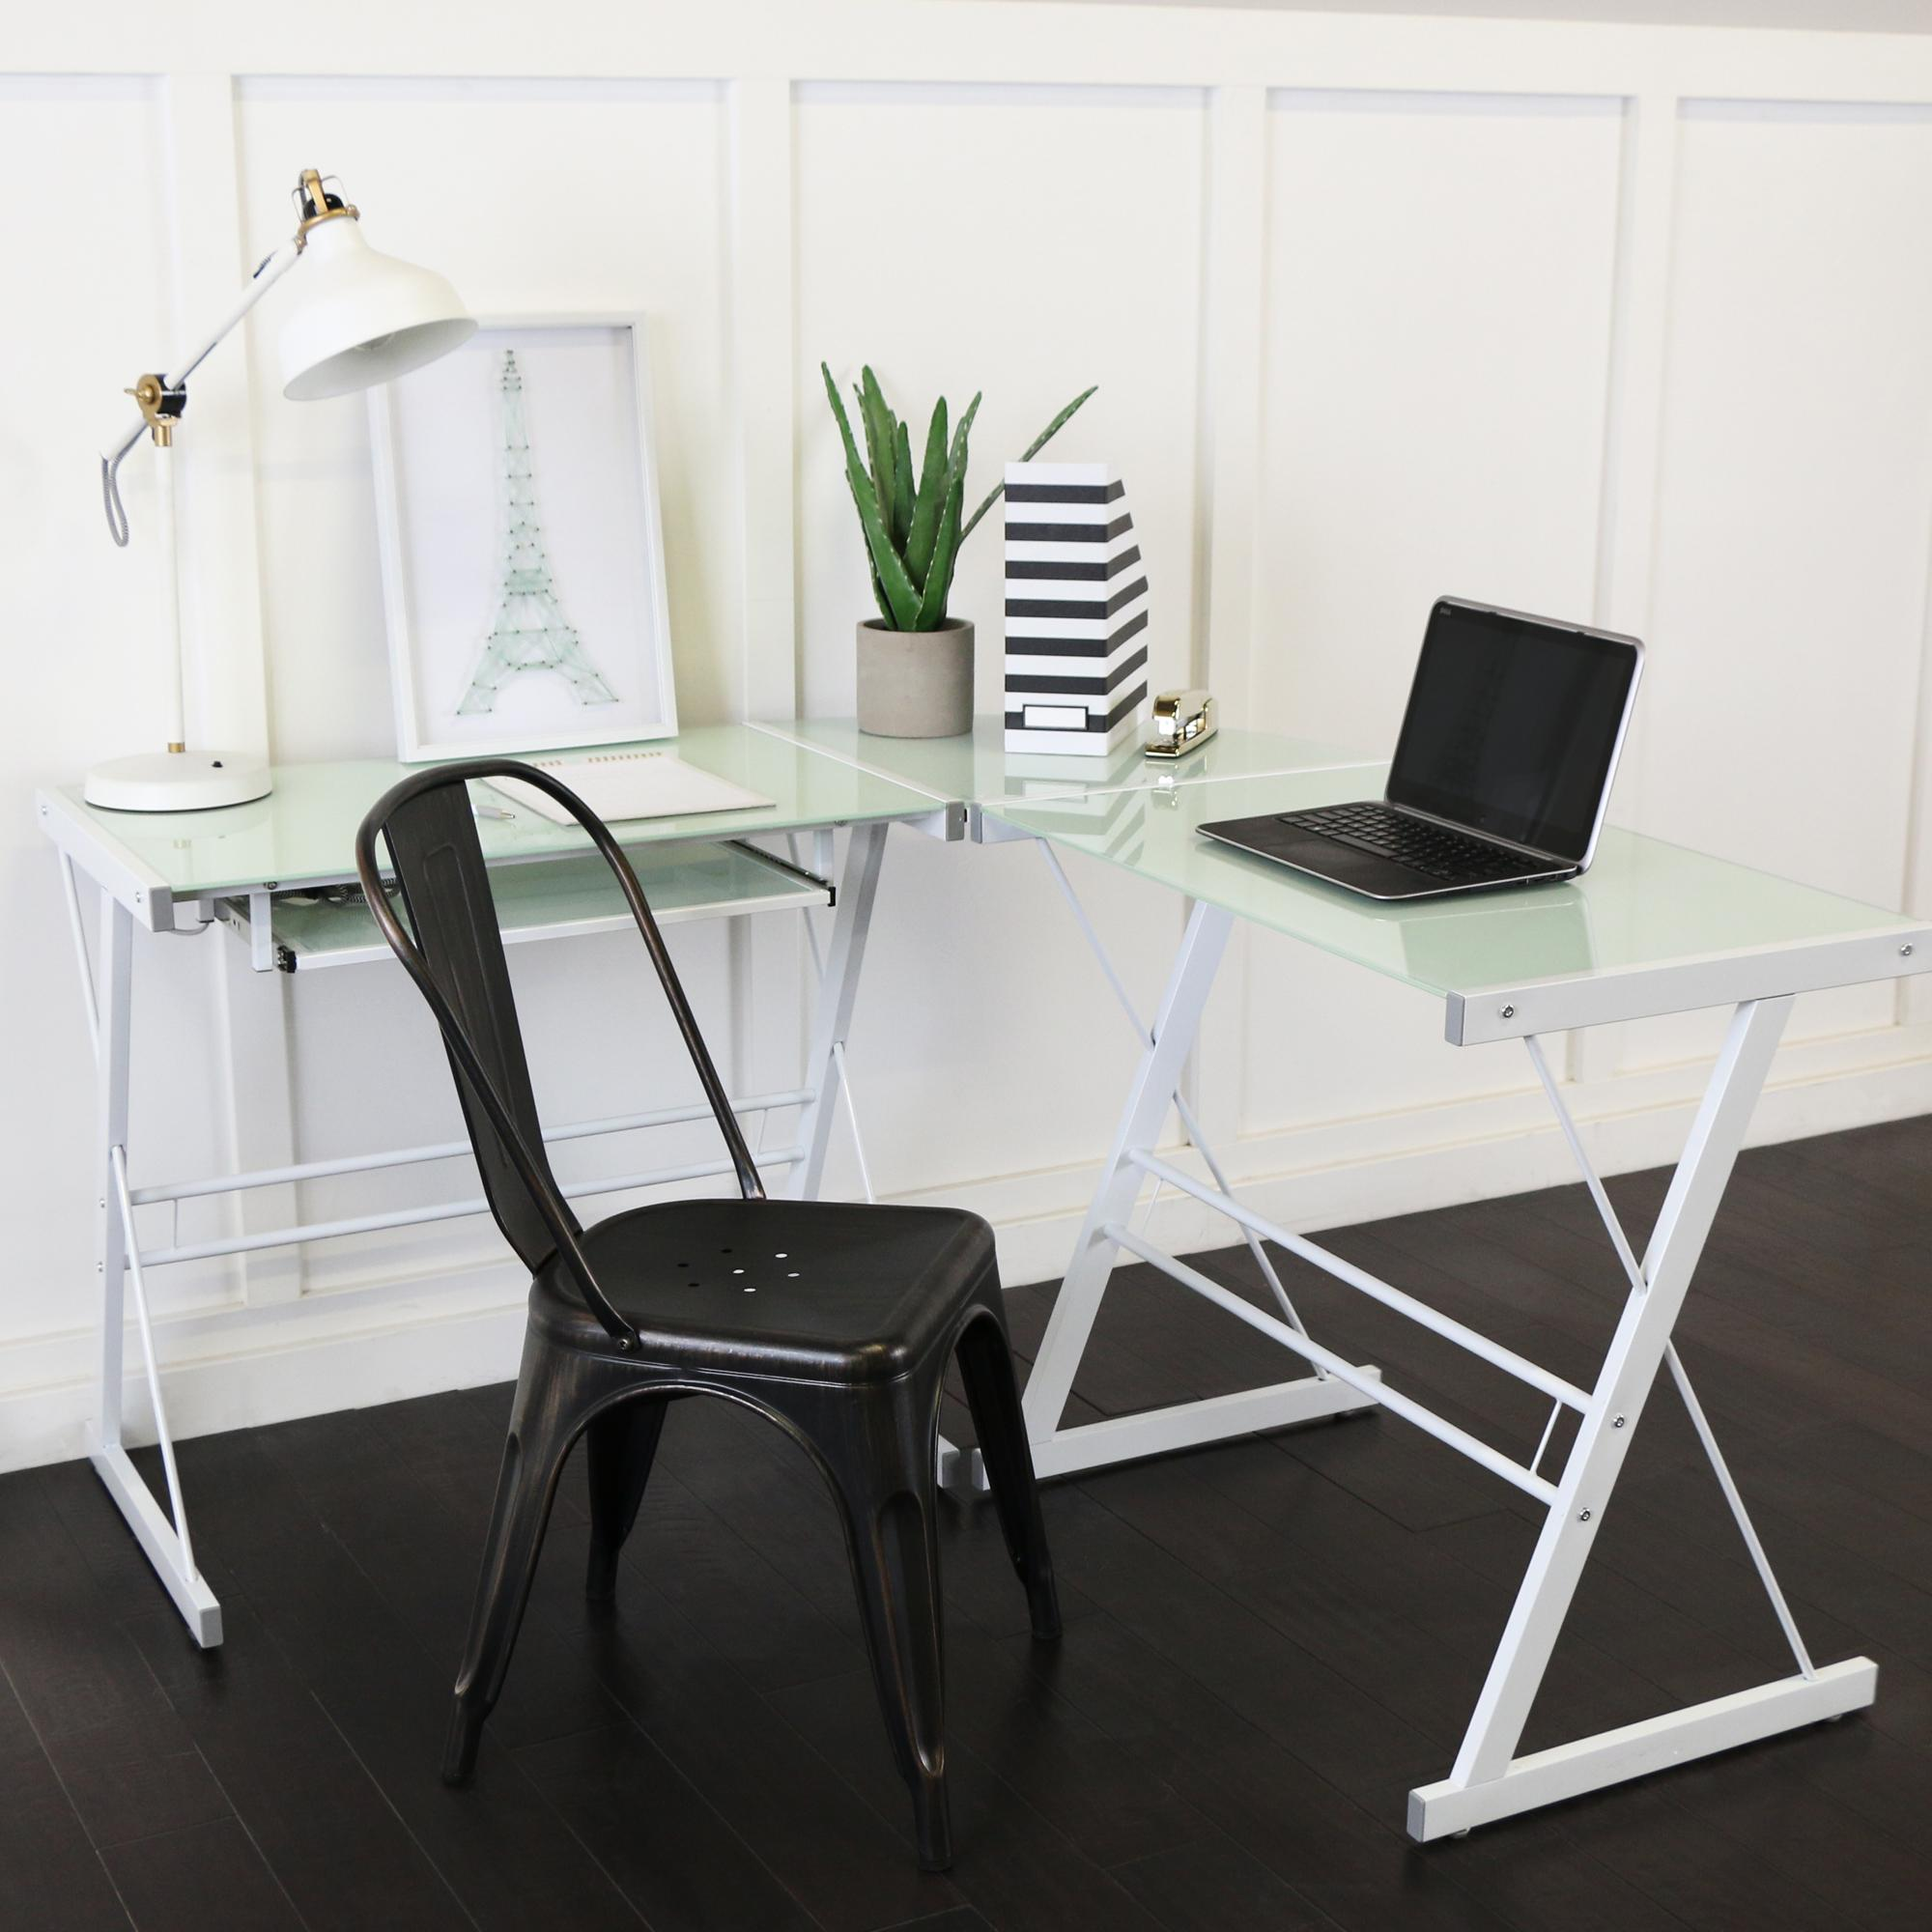 desk office small in home gray amazon size corner furniture of table wonderful tables the decoration large duke full organizing images business space desks